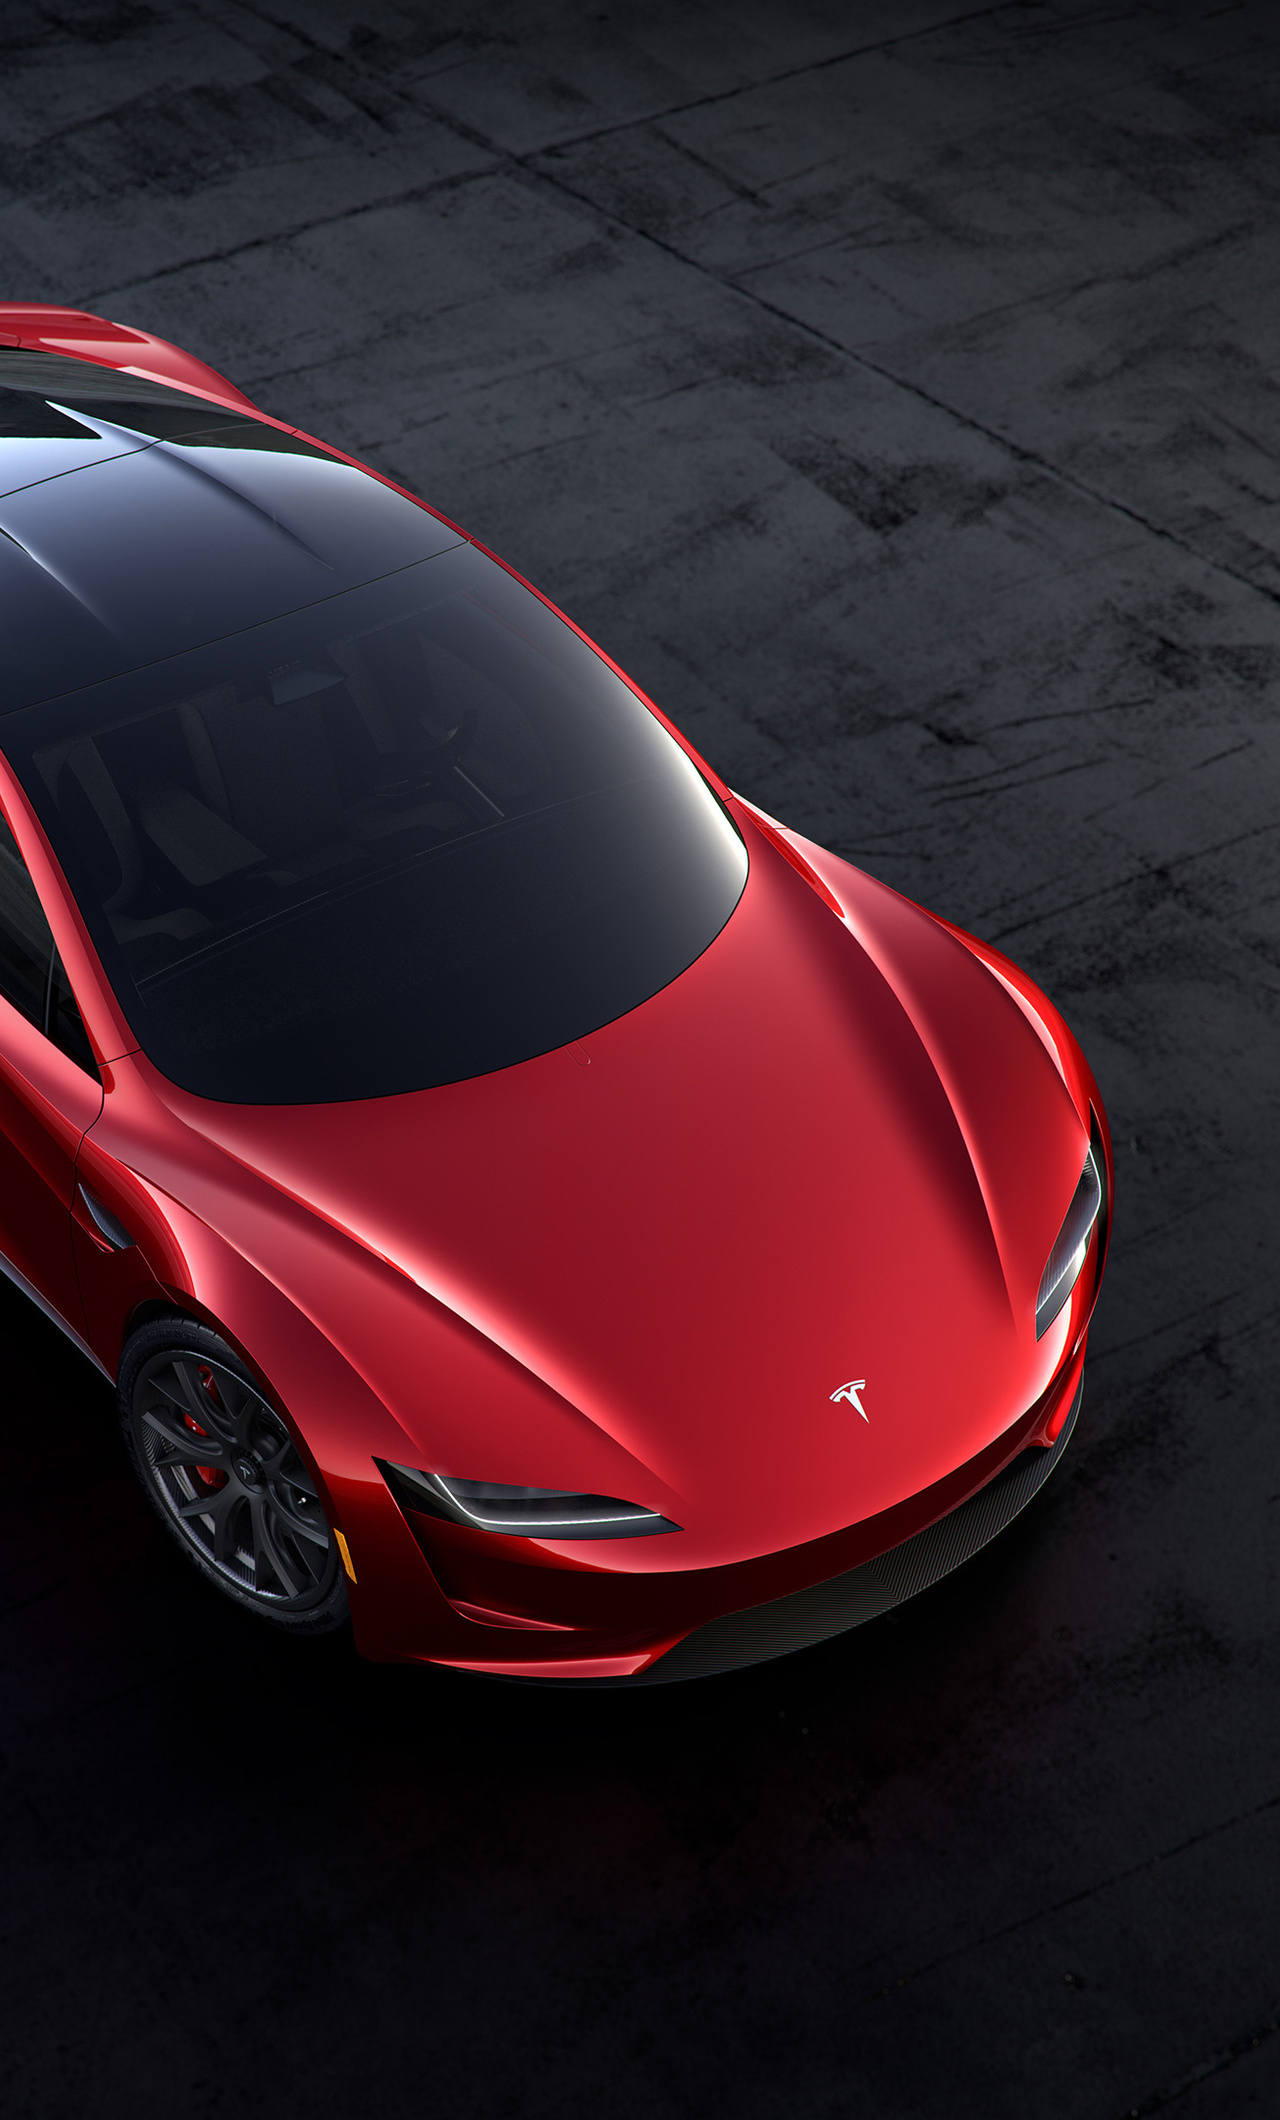 1280x2120 tesla roadster 2018 iphone 6 hd 4k wallpapers images backgrounds photos and pictures - Tesla wallpaper android ...